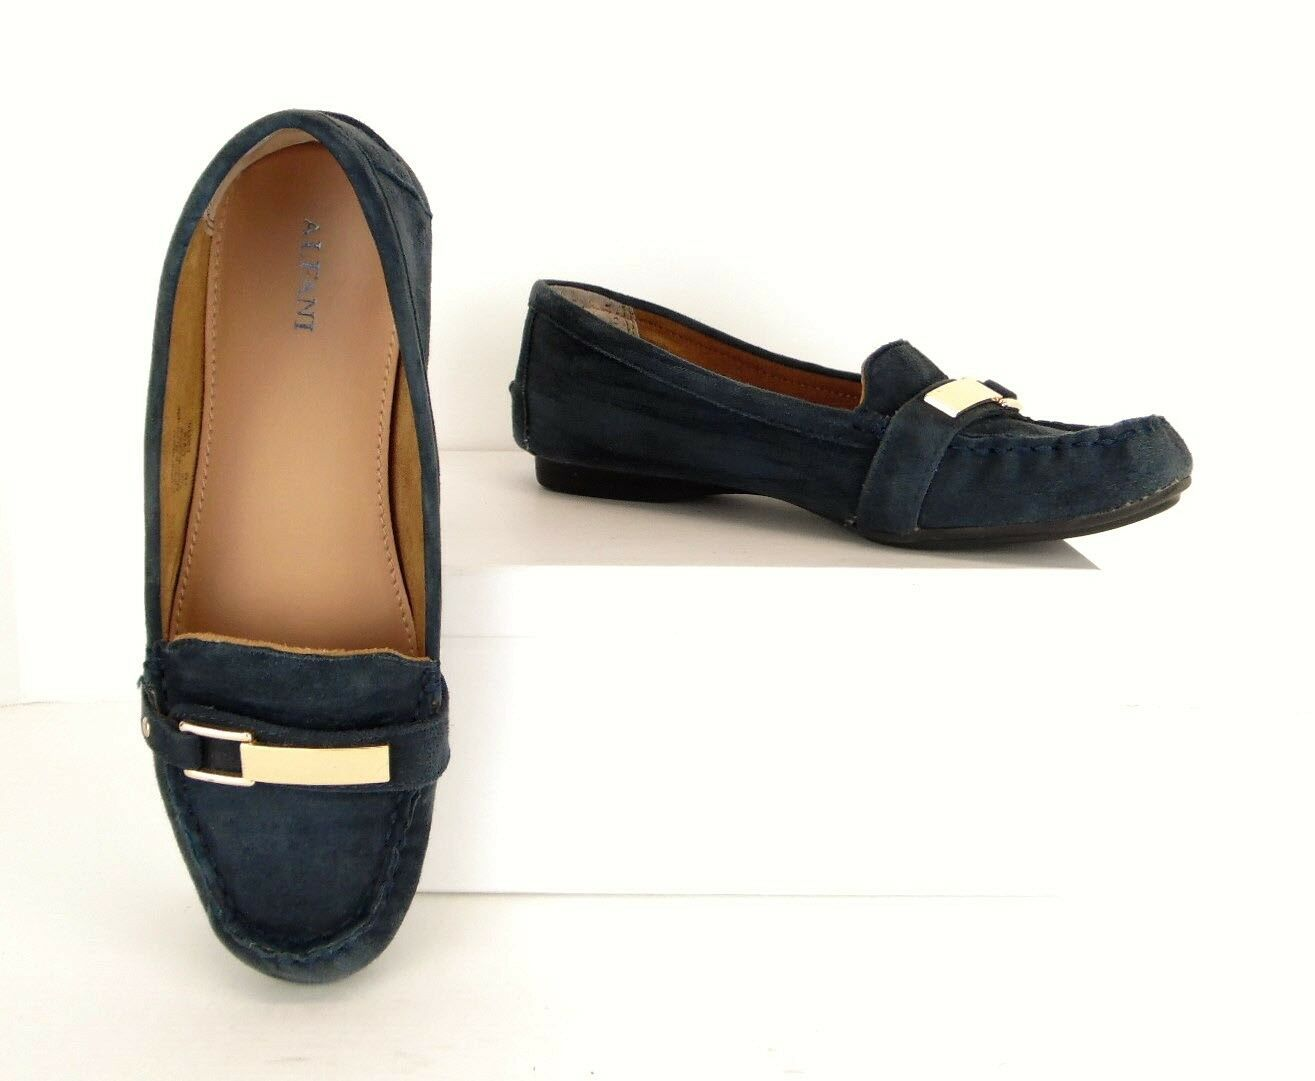 Alfani Girra bluee Suede Leather Slip On Loafers Flats Casual Women's 7 M (S169)